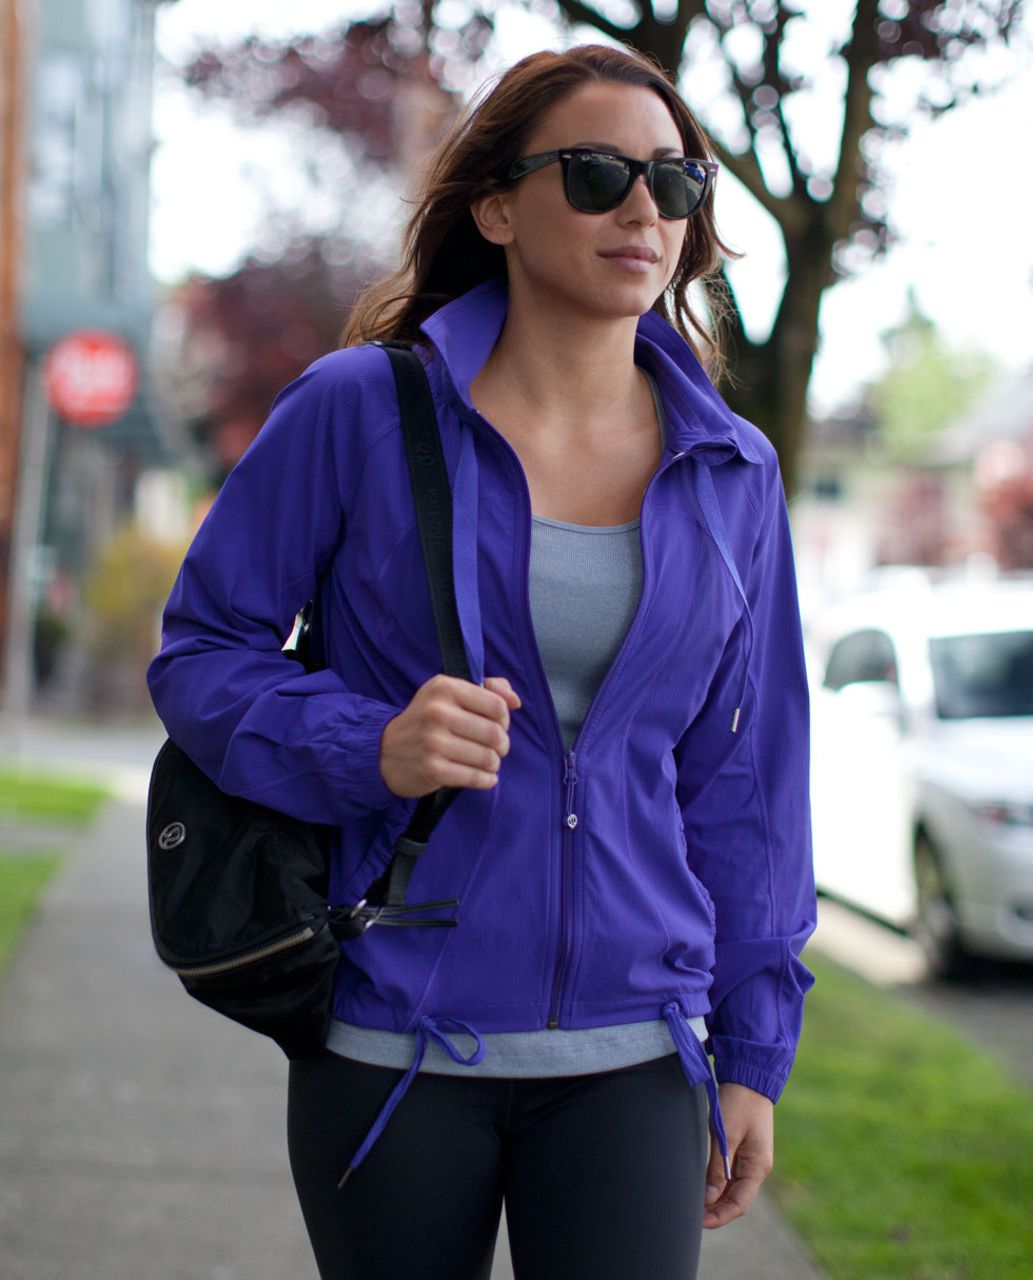 Transition jackets lululemon transition jacket - bruised berry NYTWOUU